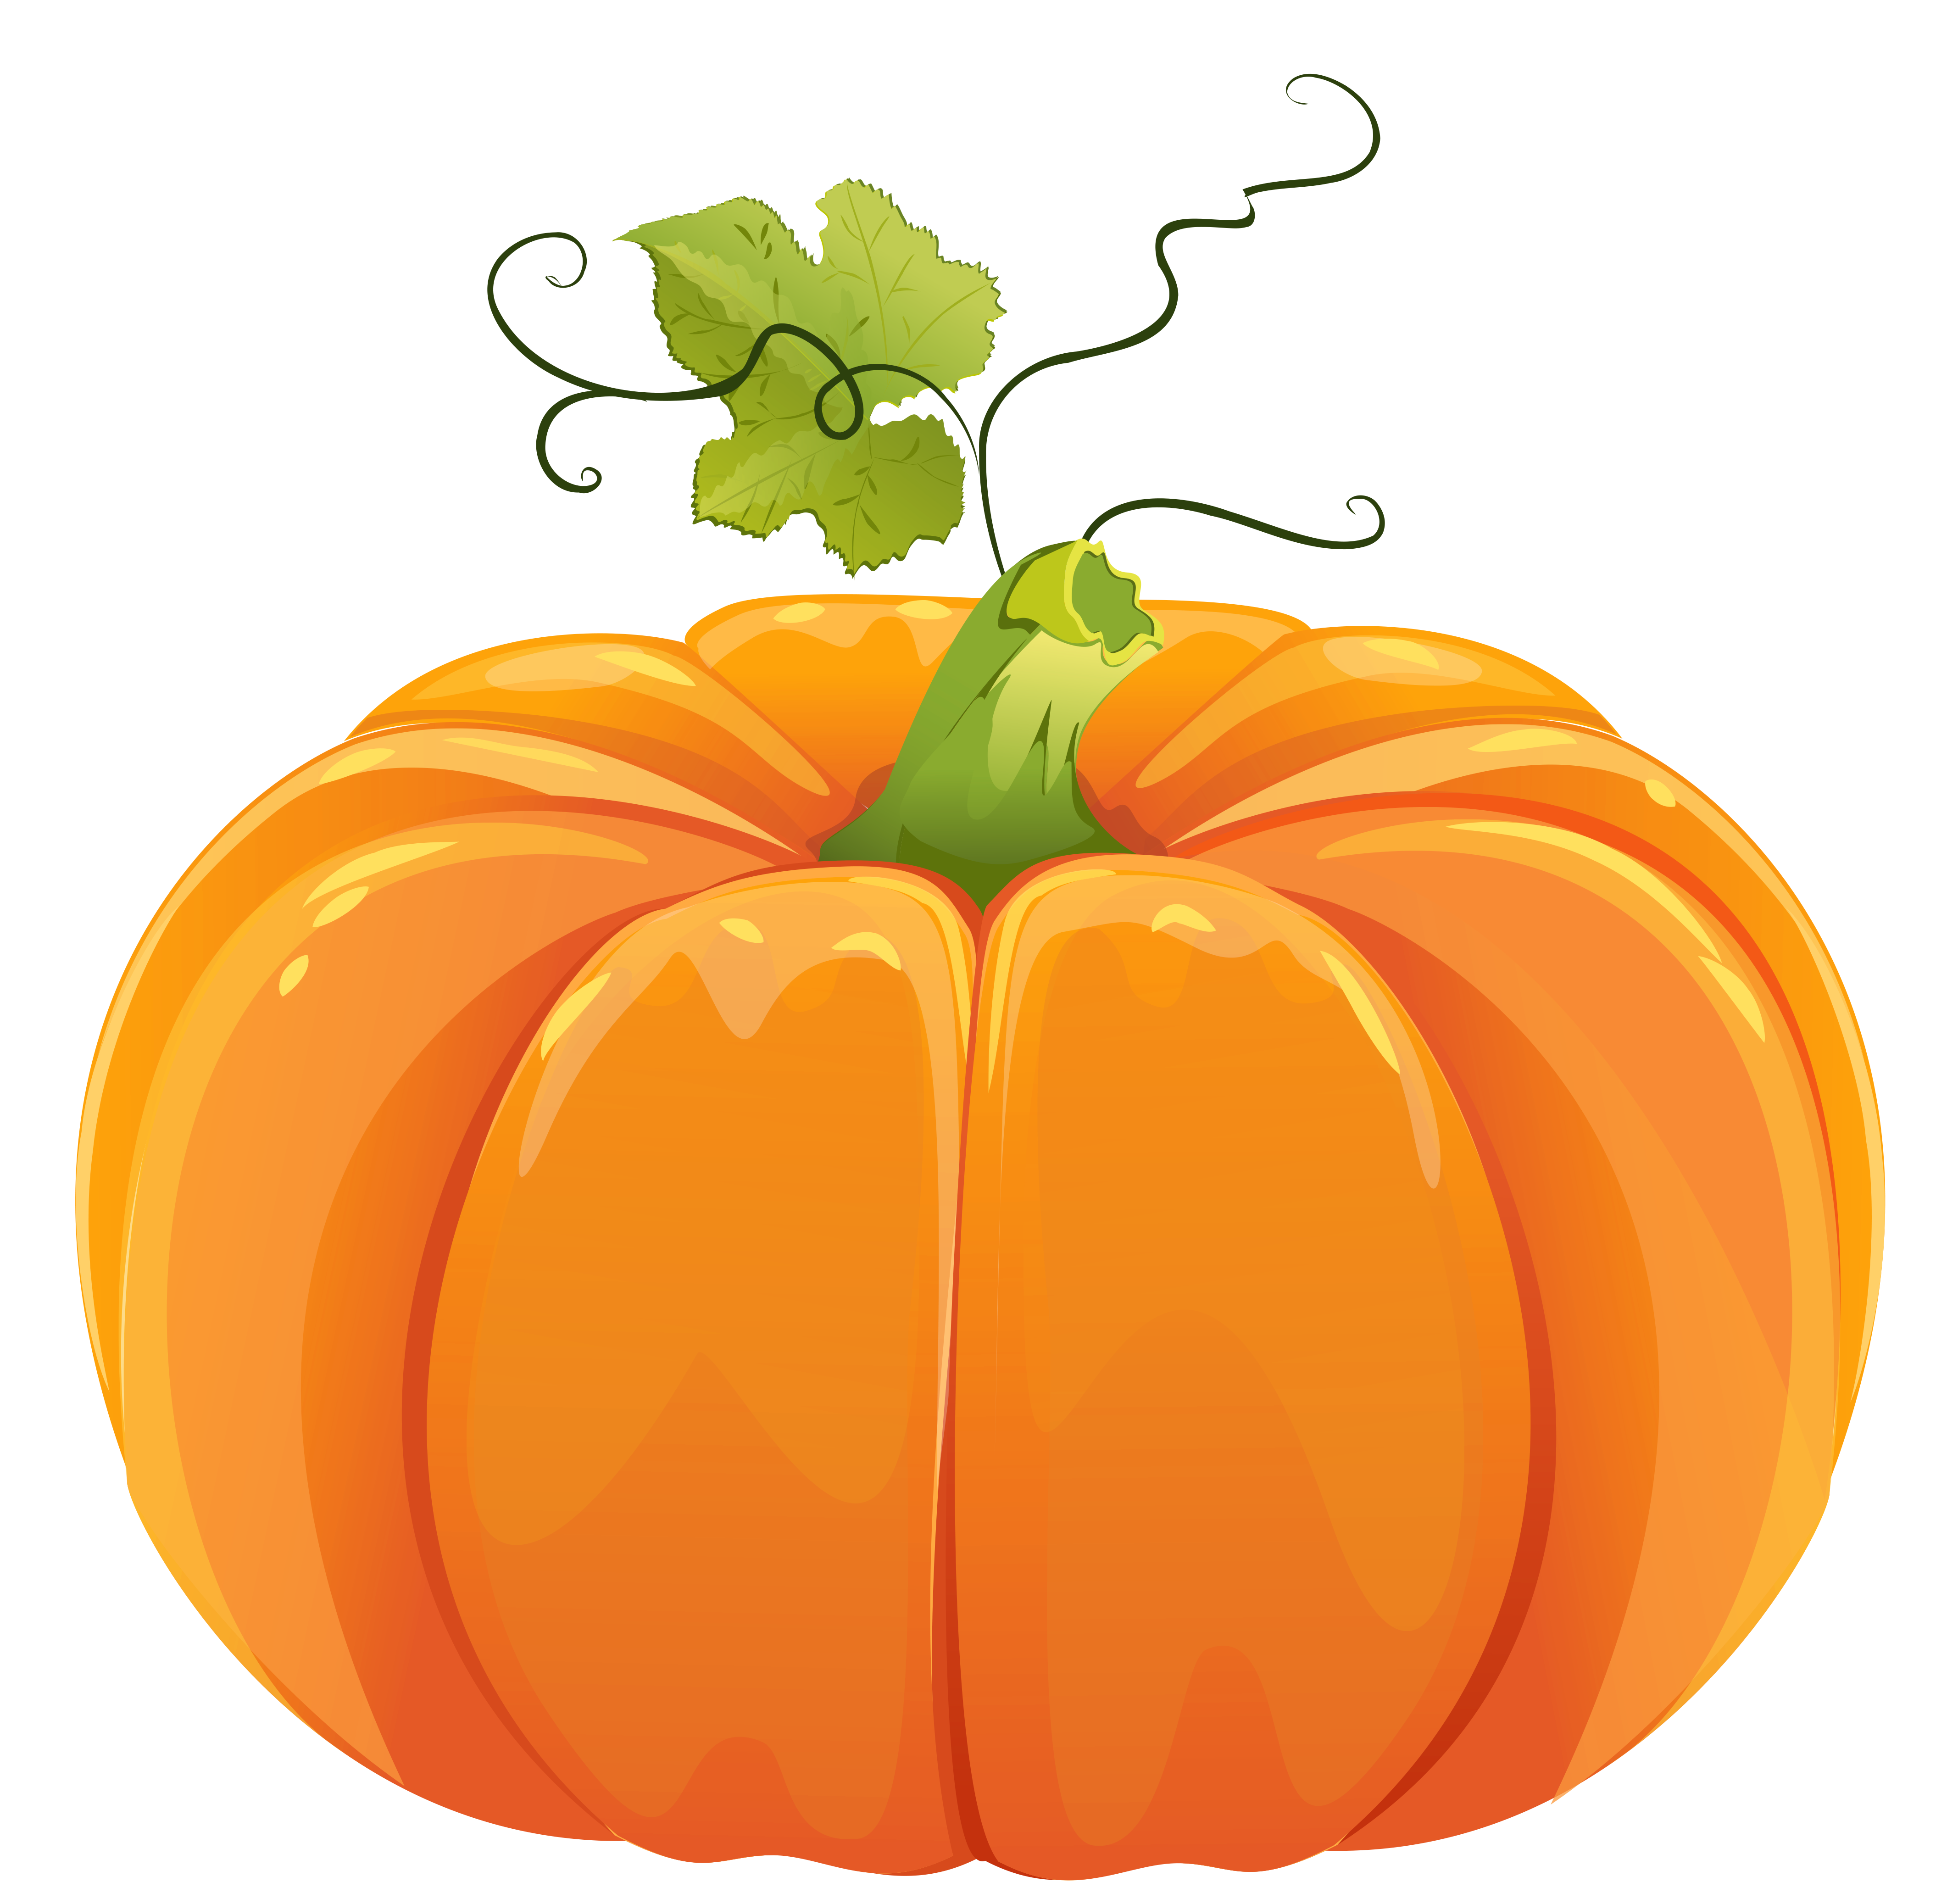 Free Pumpkin Clipart Transparent Background, Download Free